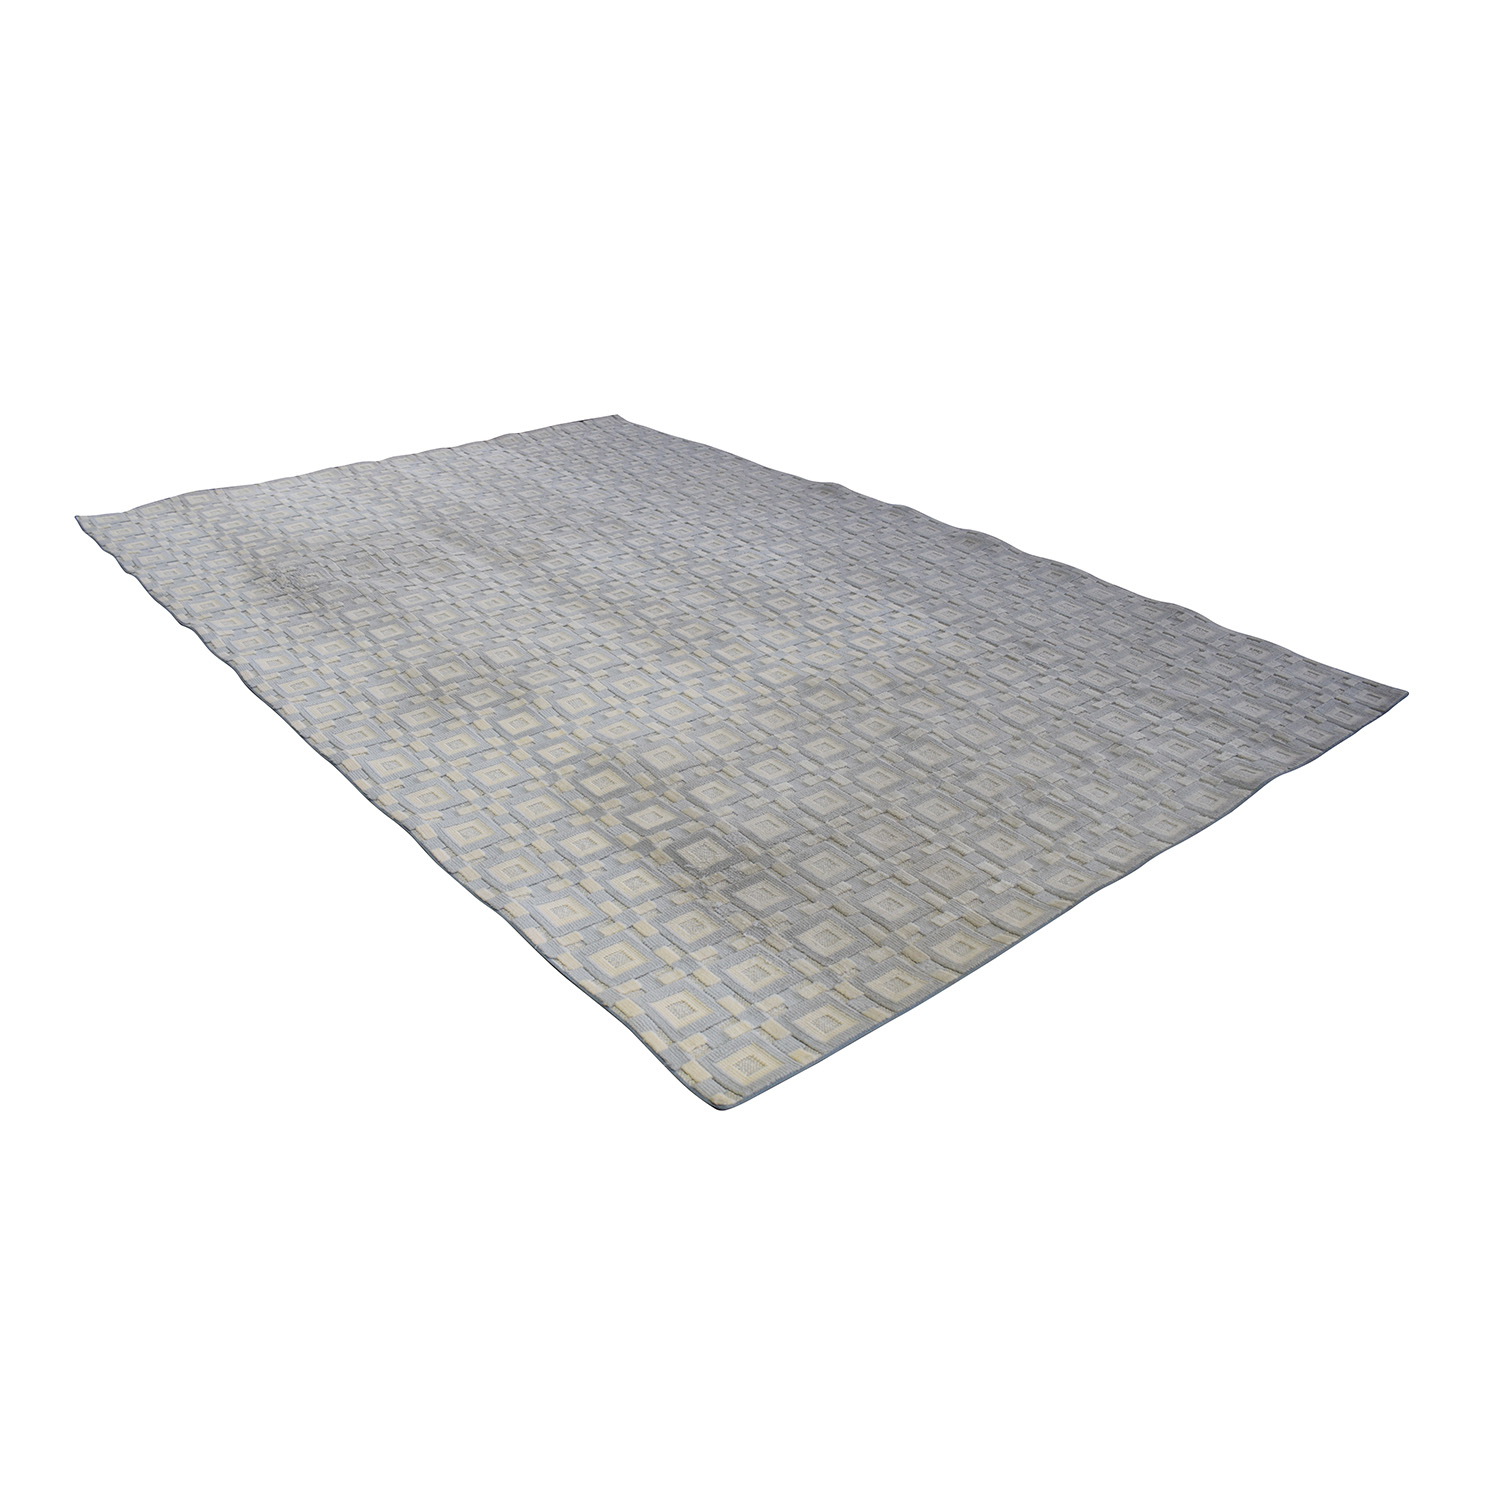 Gray and White 9x12 Natural Fiber Rug Rugs